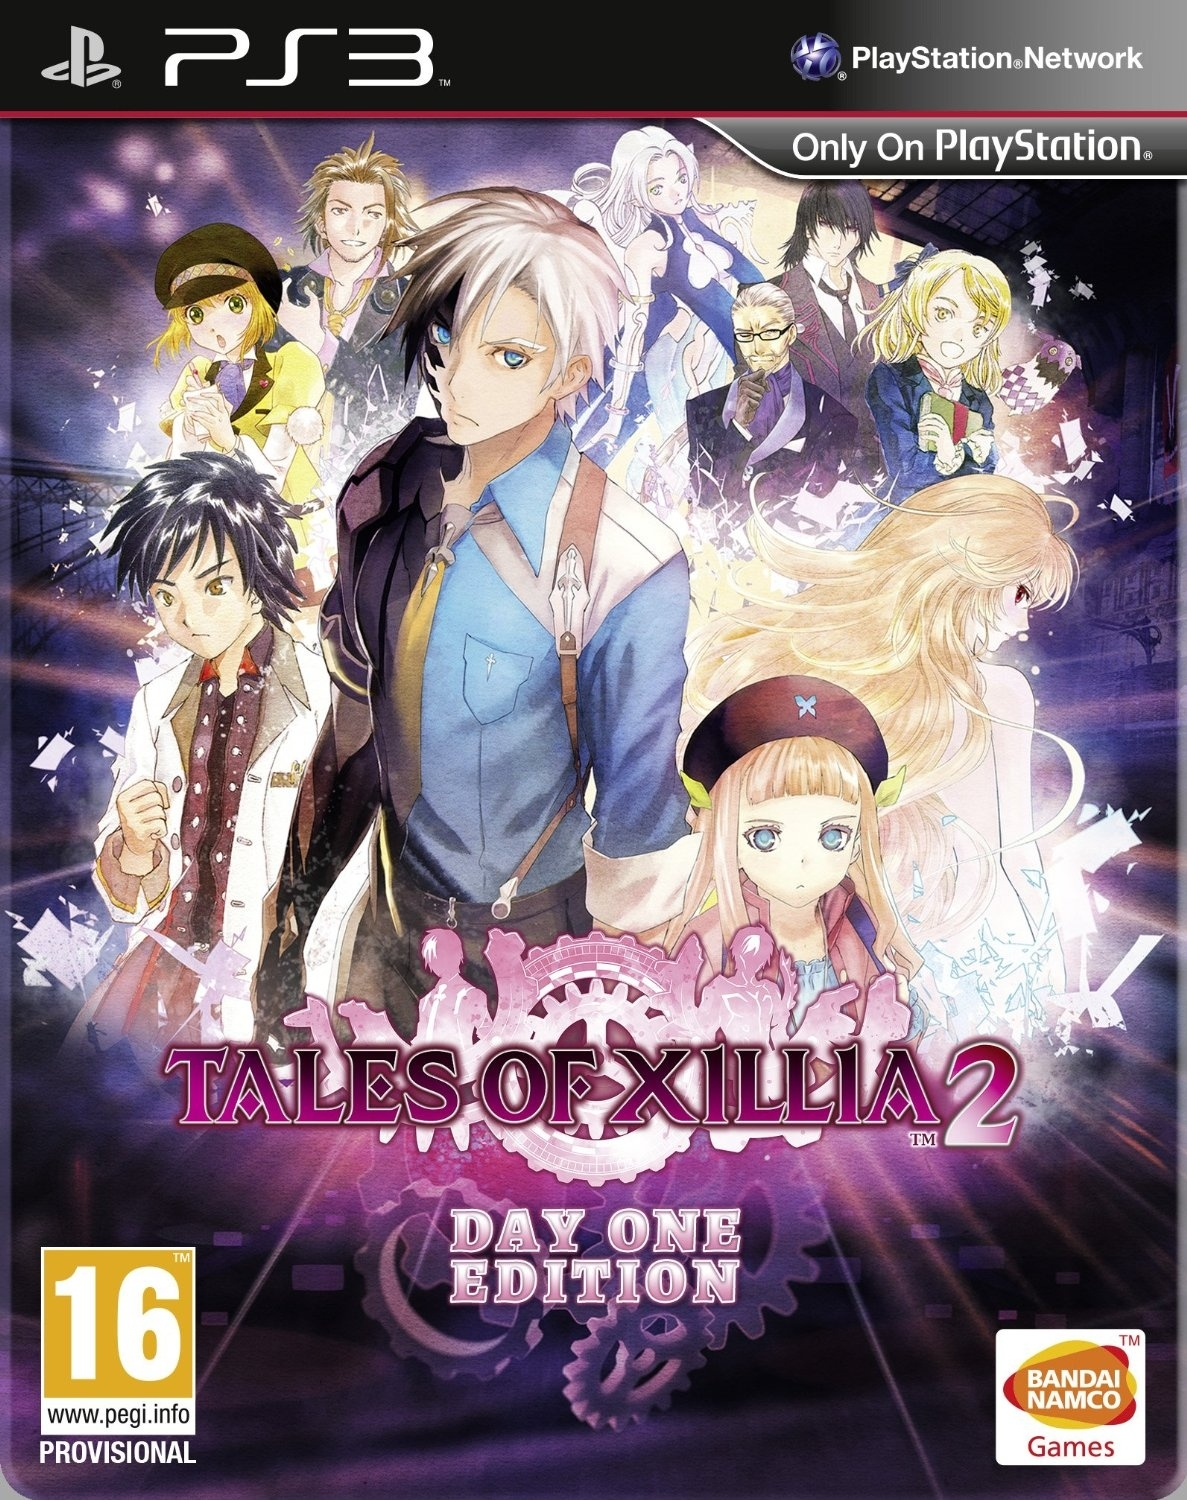 Tales of Xillia 2 D1 Edition (PS3)